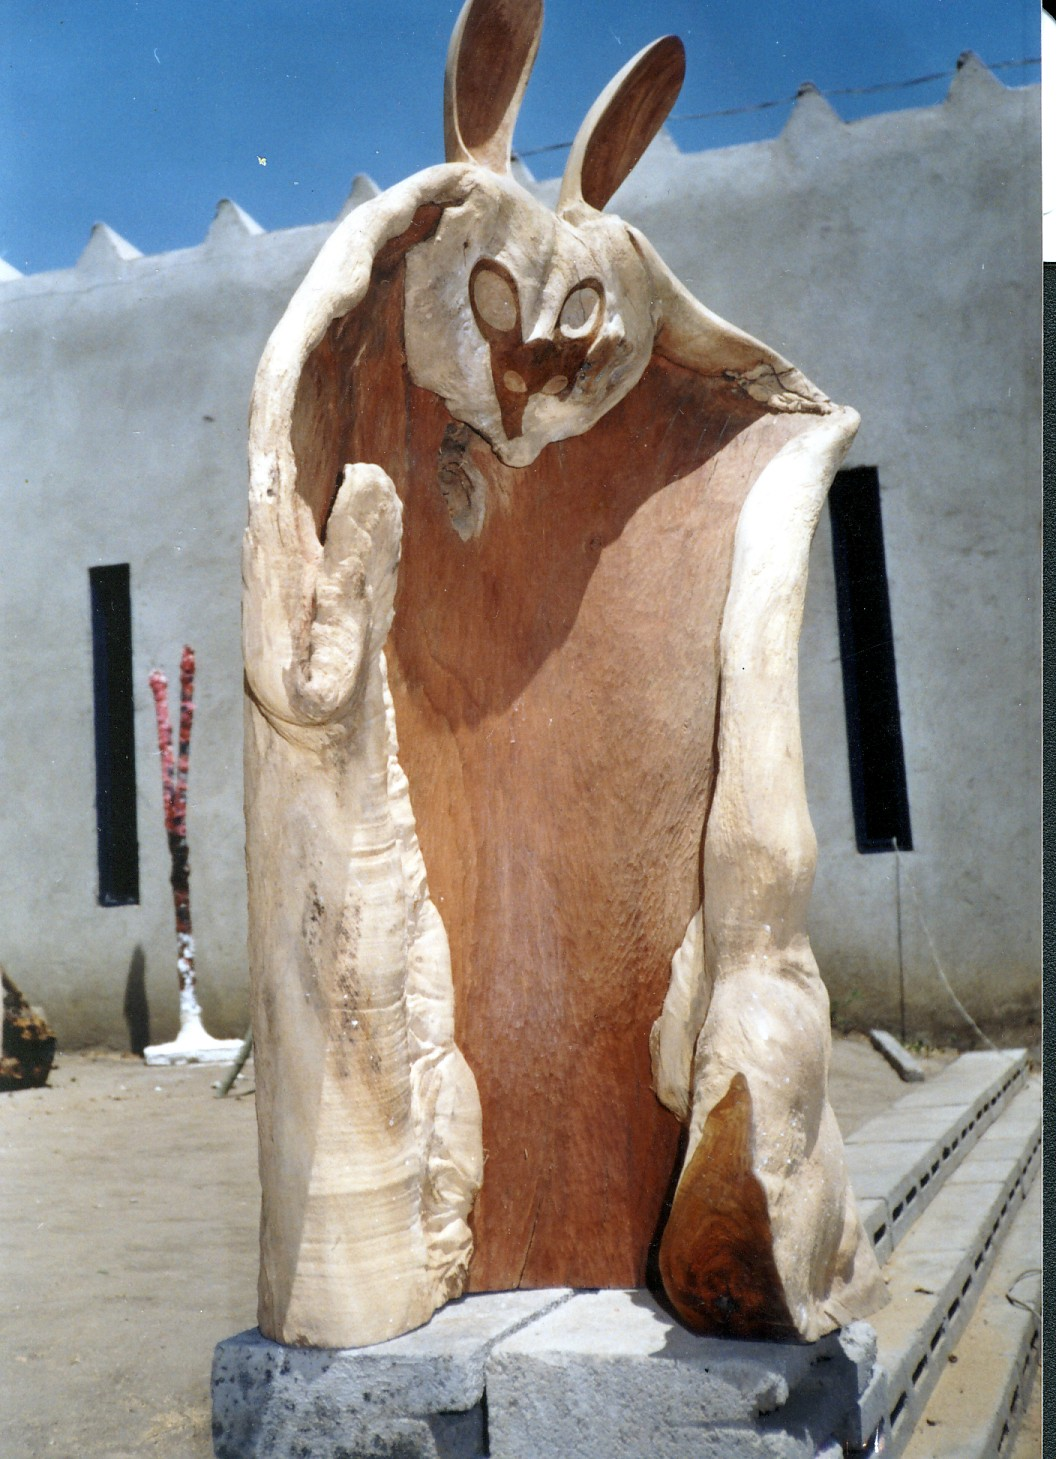 The eyes of the rabbit are the ears of the jackal aka Twentieth Century Fox, 1997. Cuban mahogany, 135 x 65 cm. (Collection: Diehleman Gallery, Brussels; (Photo: G Dixon) Note: The house designed by the artist is in the background